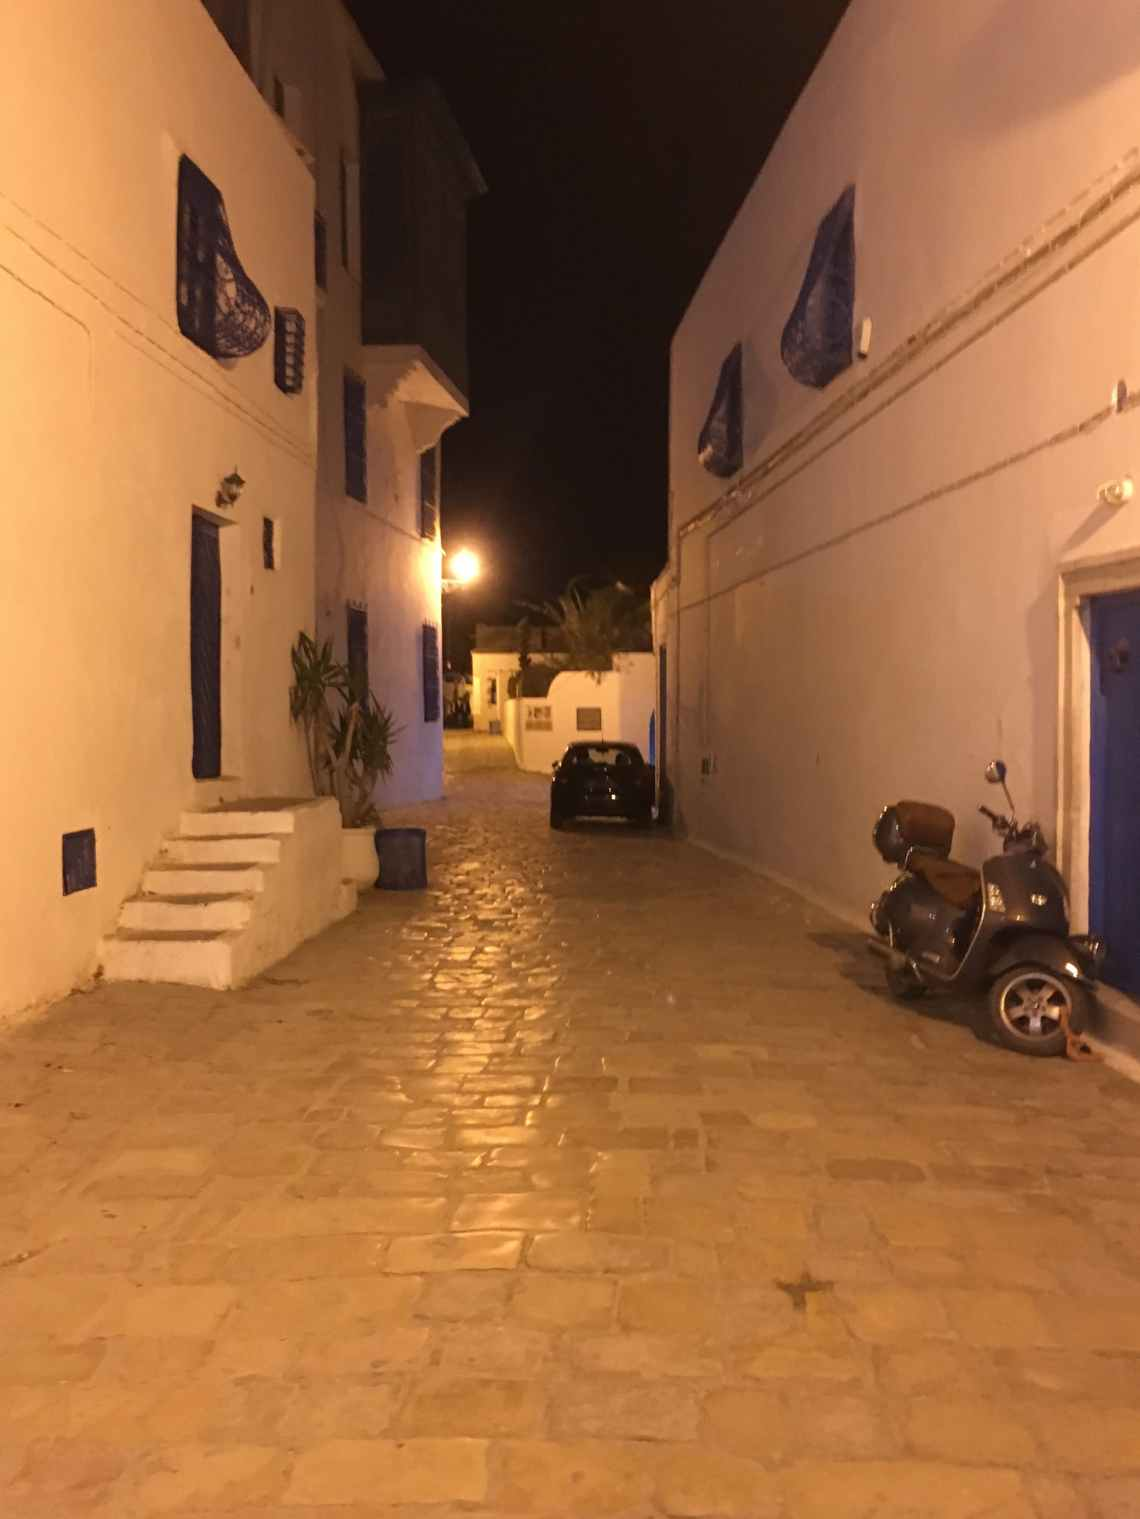 At nighttime, the streets in Sidi Bou Said are dimly lit with only a few people out and about.